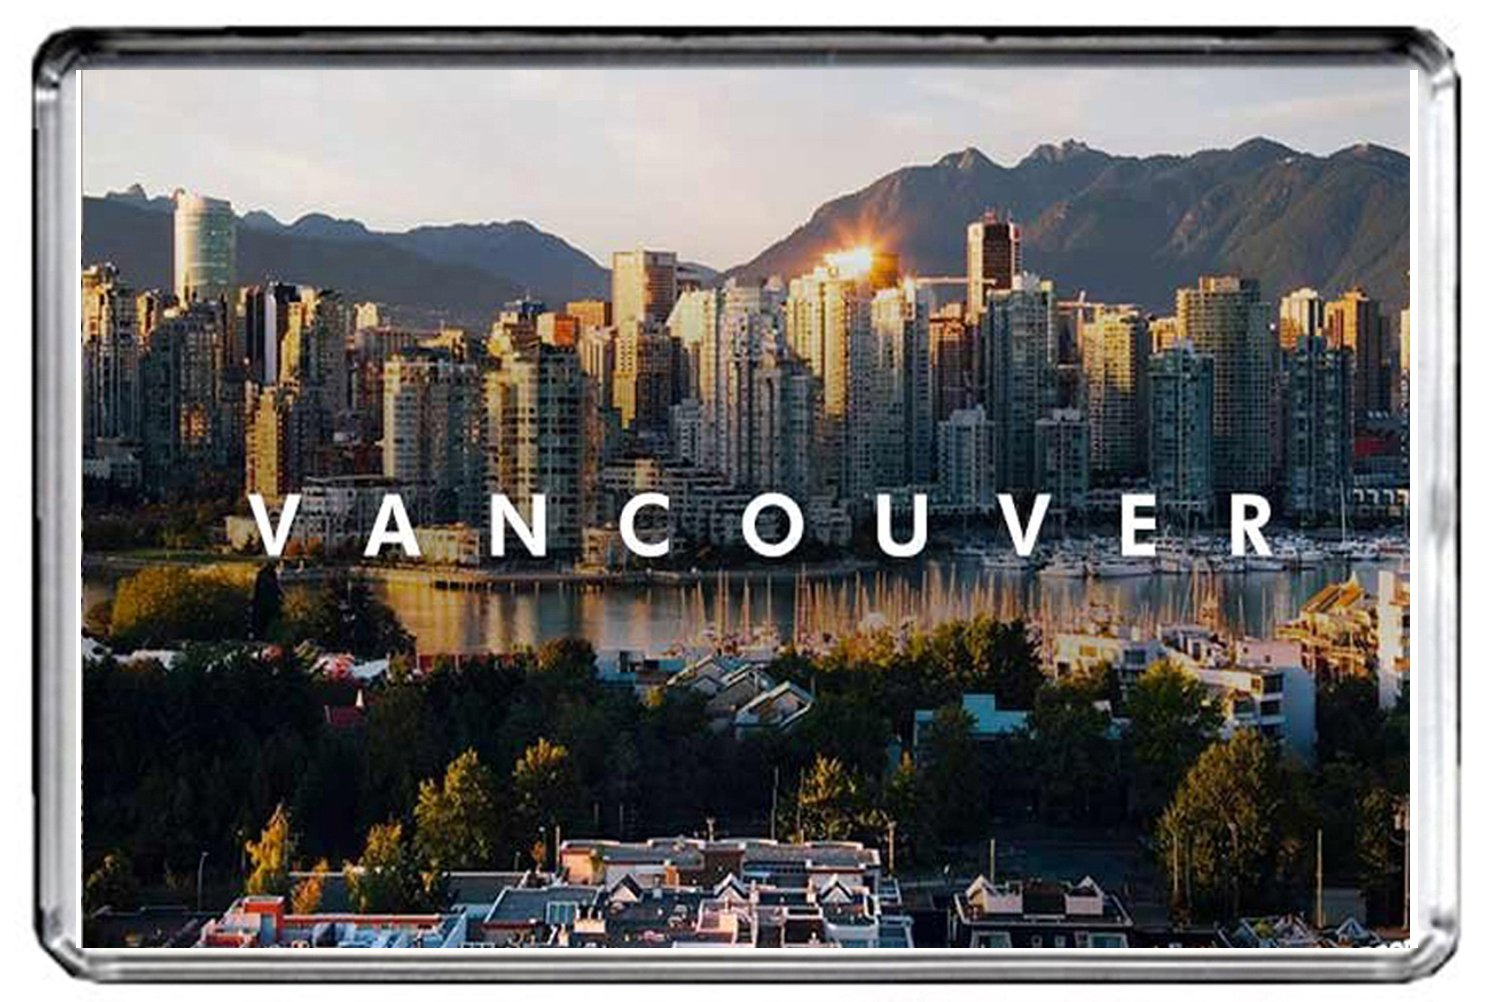 E046 VANCOUVER FRIDGE MAGNET CANADA TRAVEL PHOTO REFRIGERATOR MAGNET GIFTSCITY